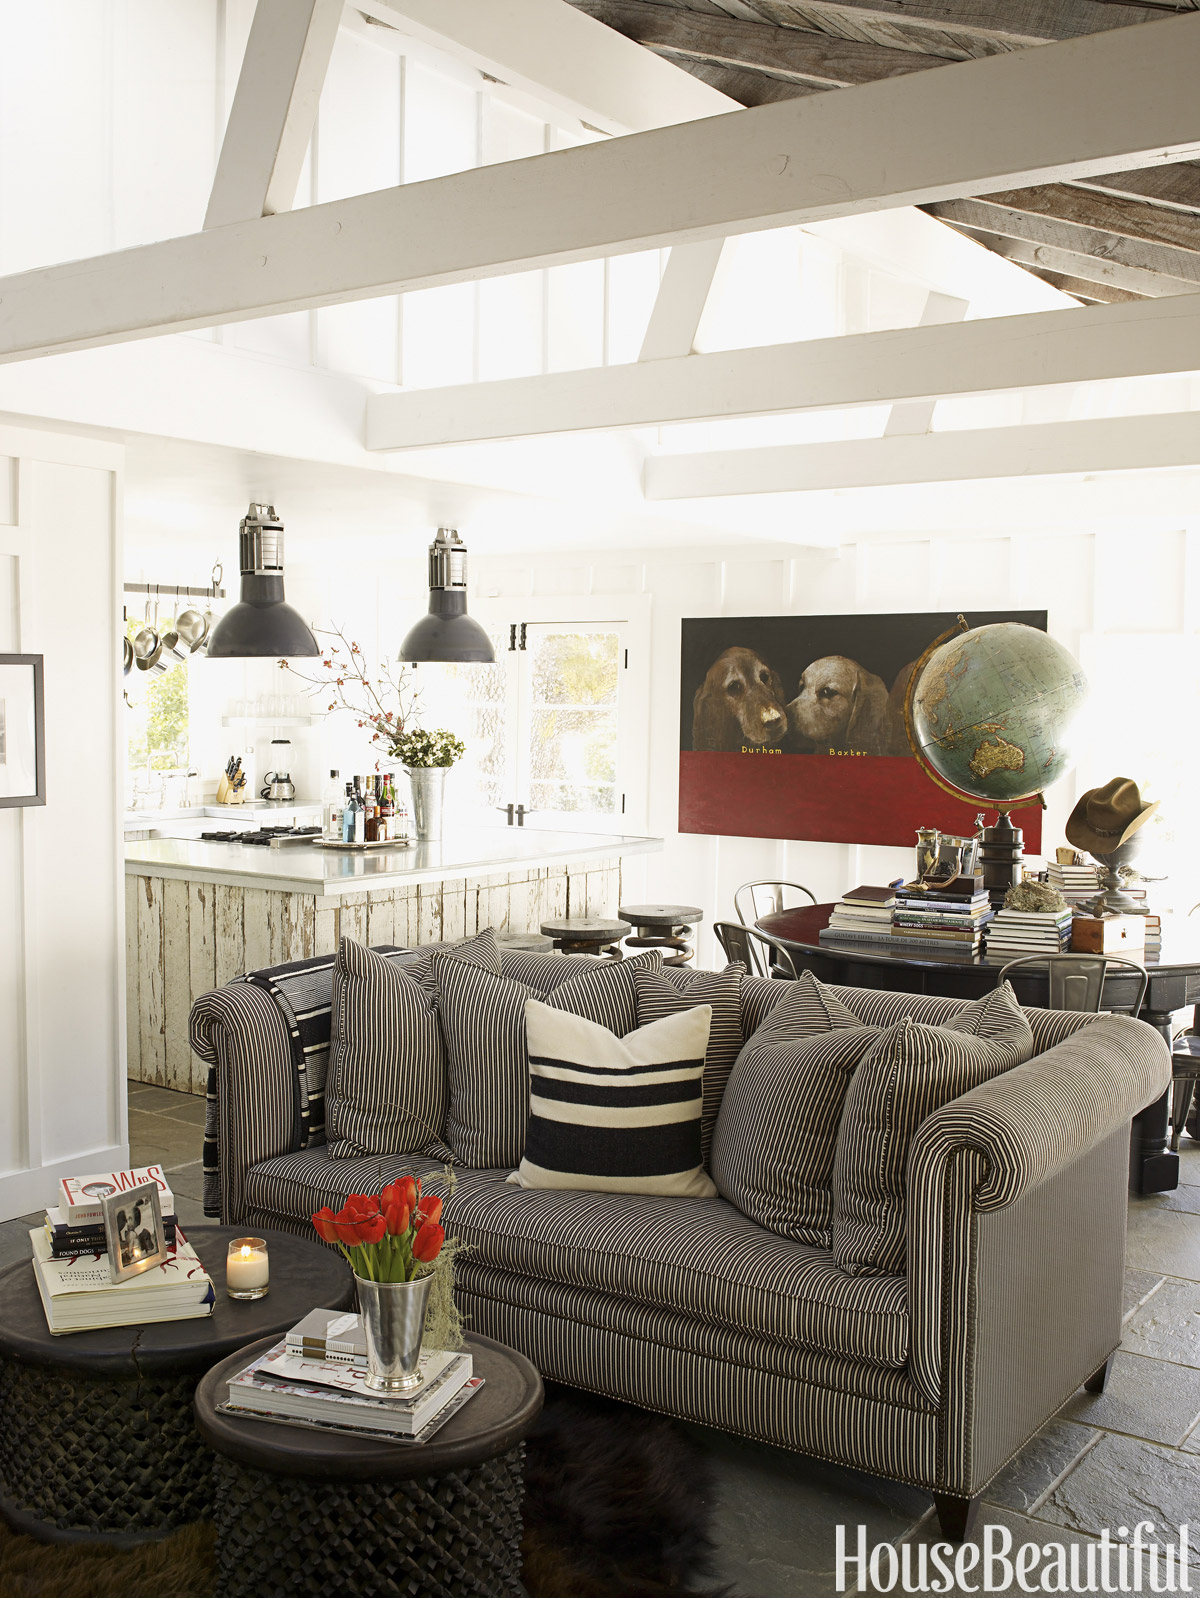 11 Small Living Room Decorating Ideas - How to Arrange a ... on Pictures For Room Decor  id=20514